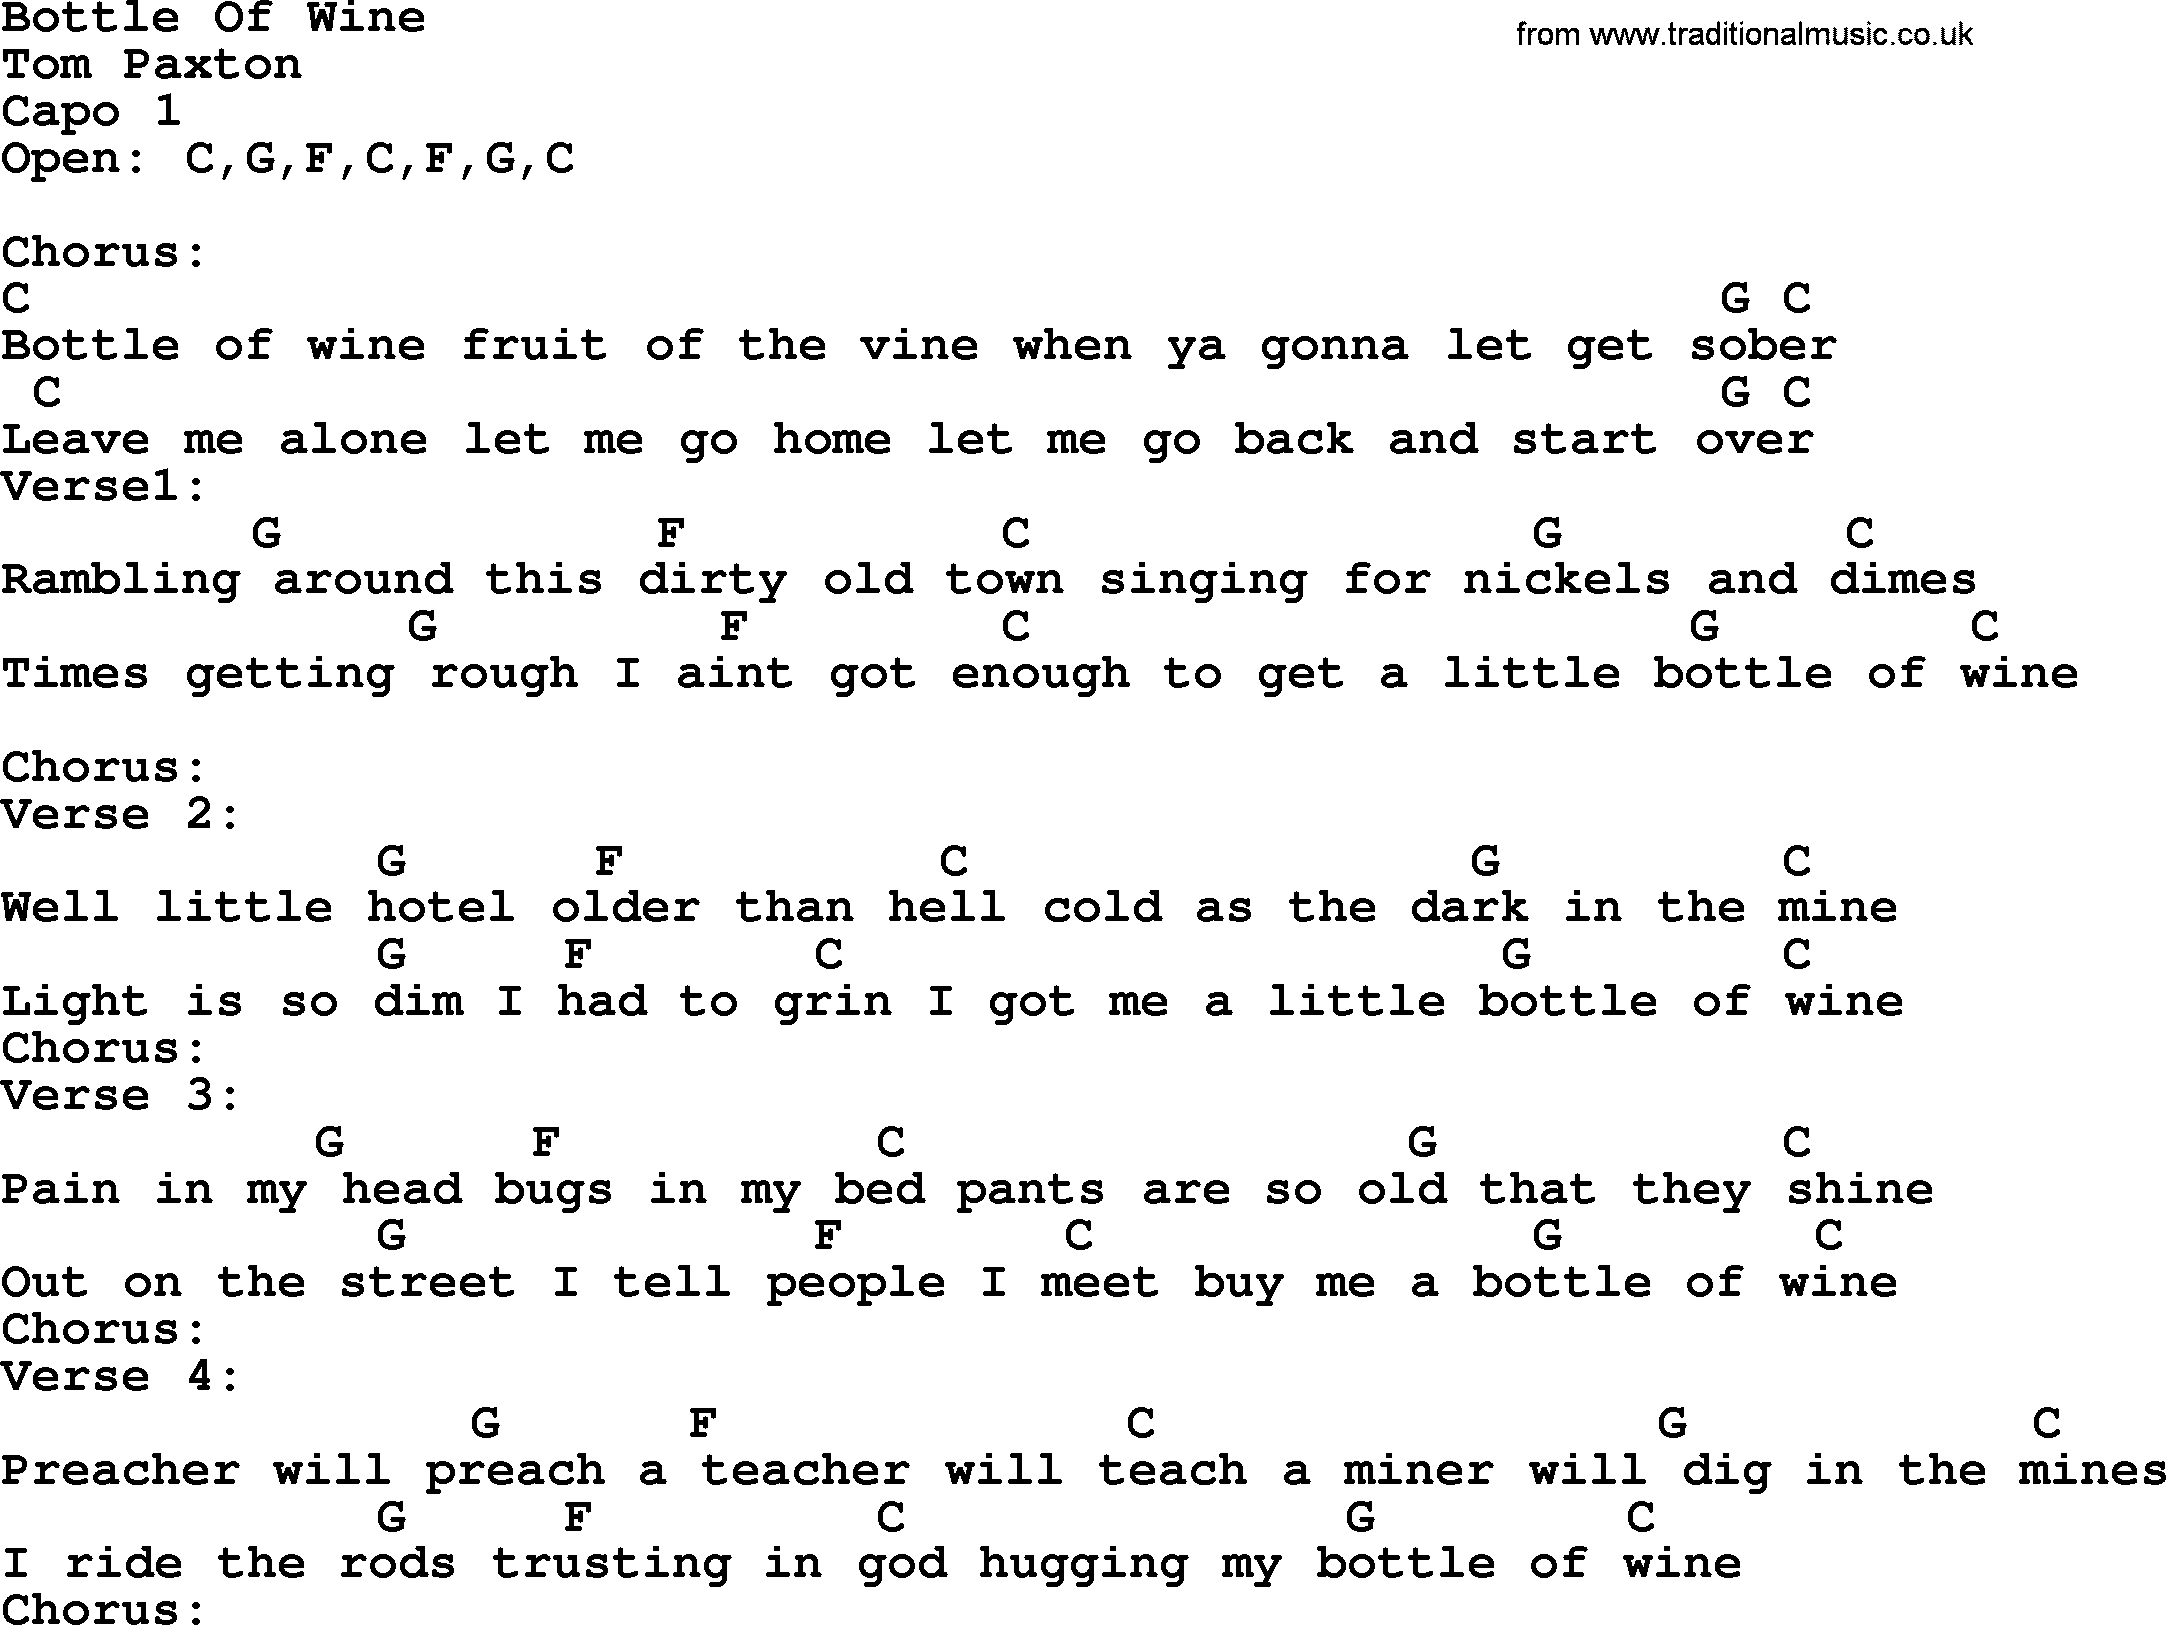 Bottle of wine by tom paxton lyrics and chords tom paxton song bottle of wine lyrics and chords hexwebz Image collections